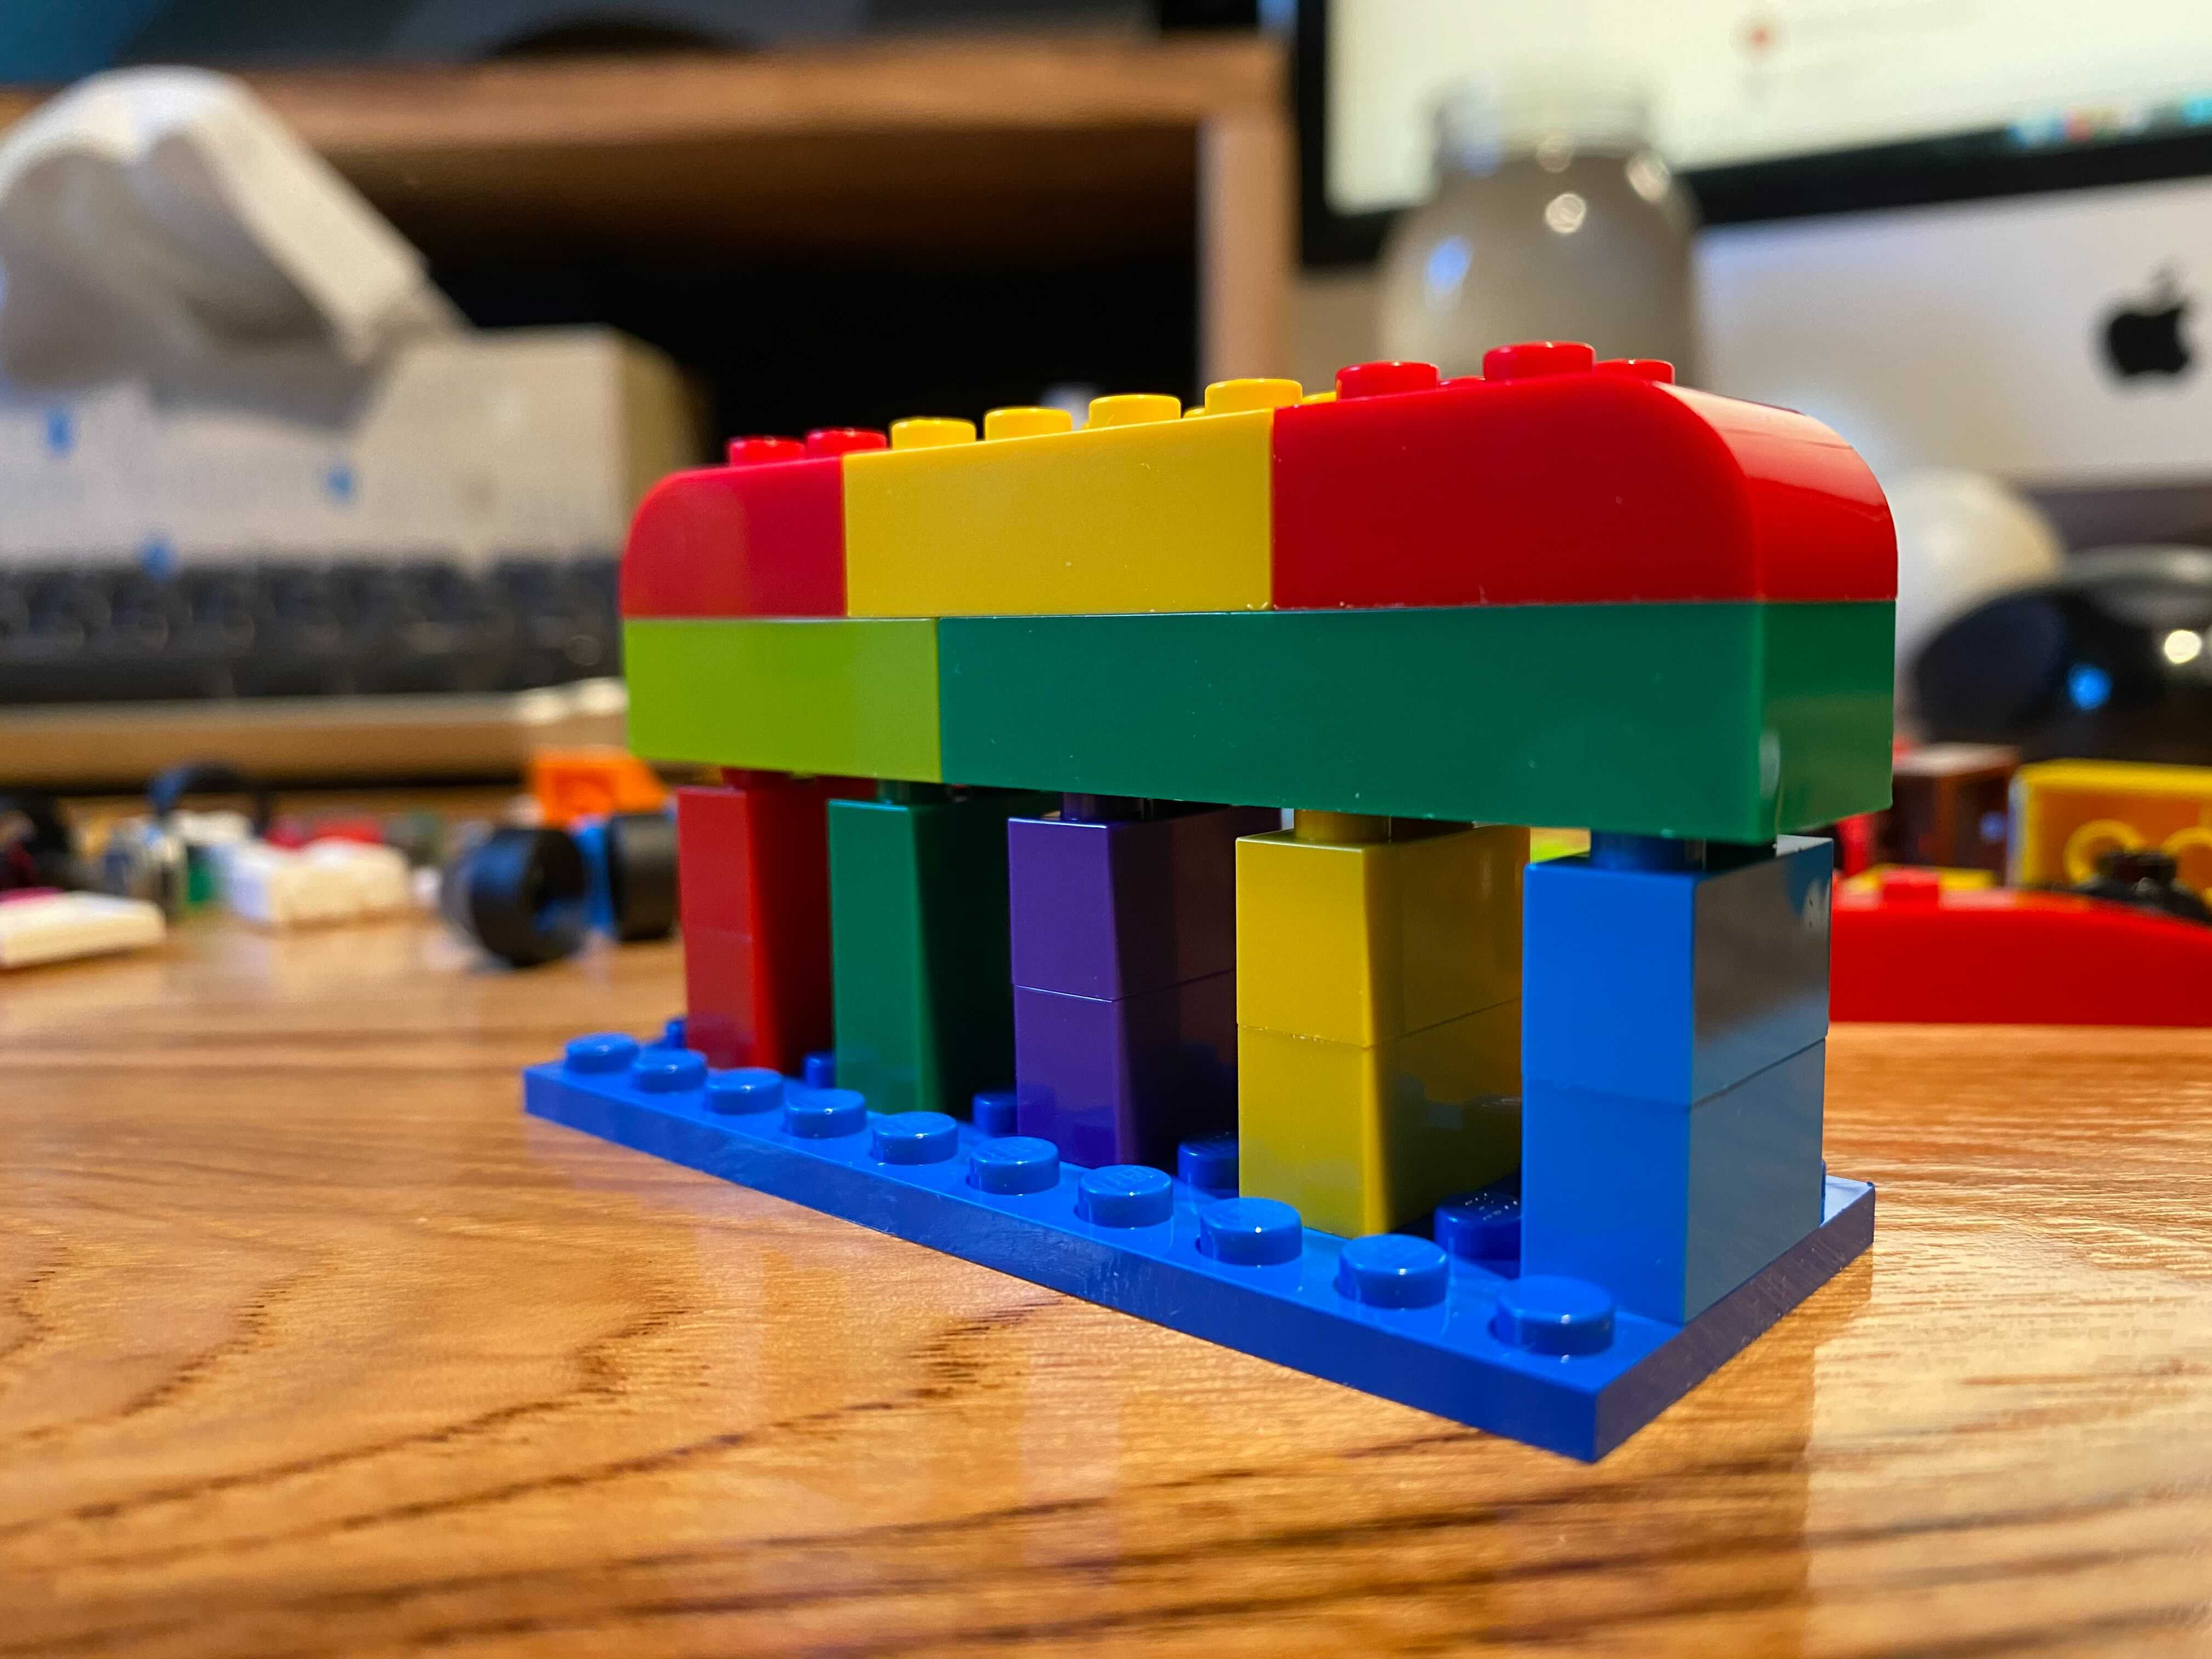 """Some legos representing """"Live as one team with one mission"""" in an abstract way."""